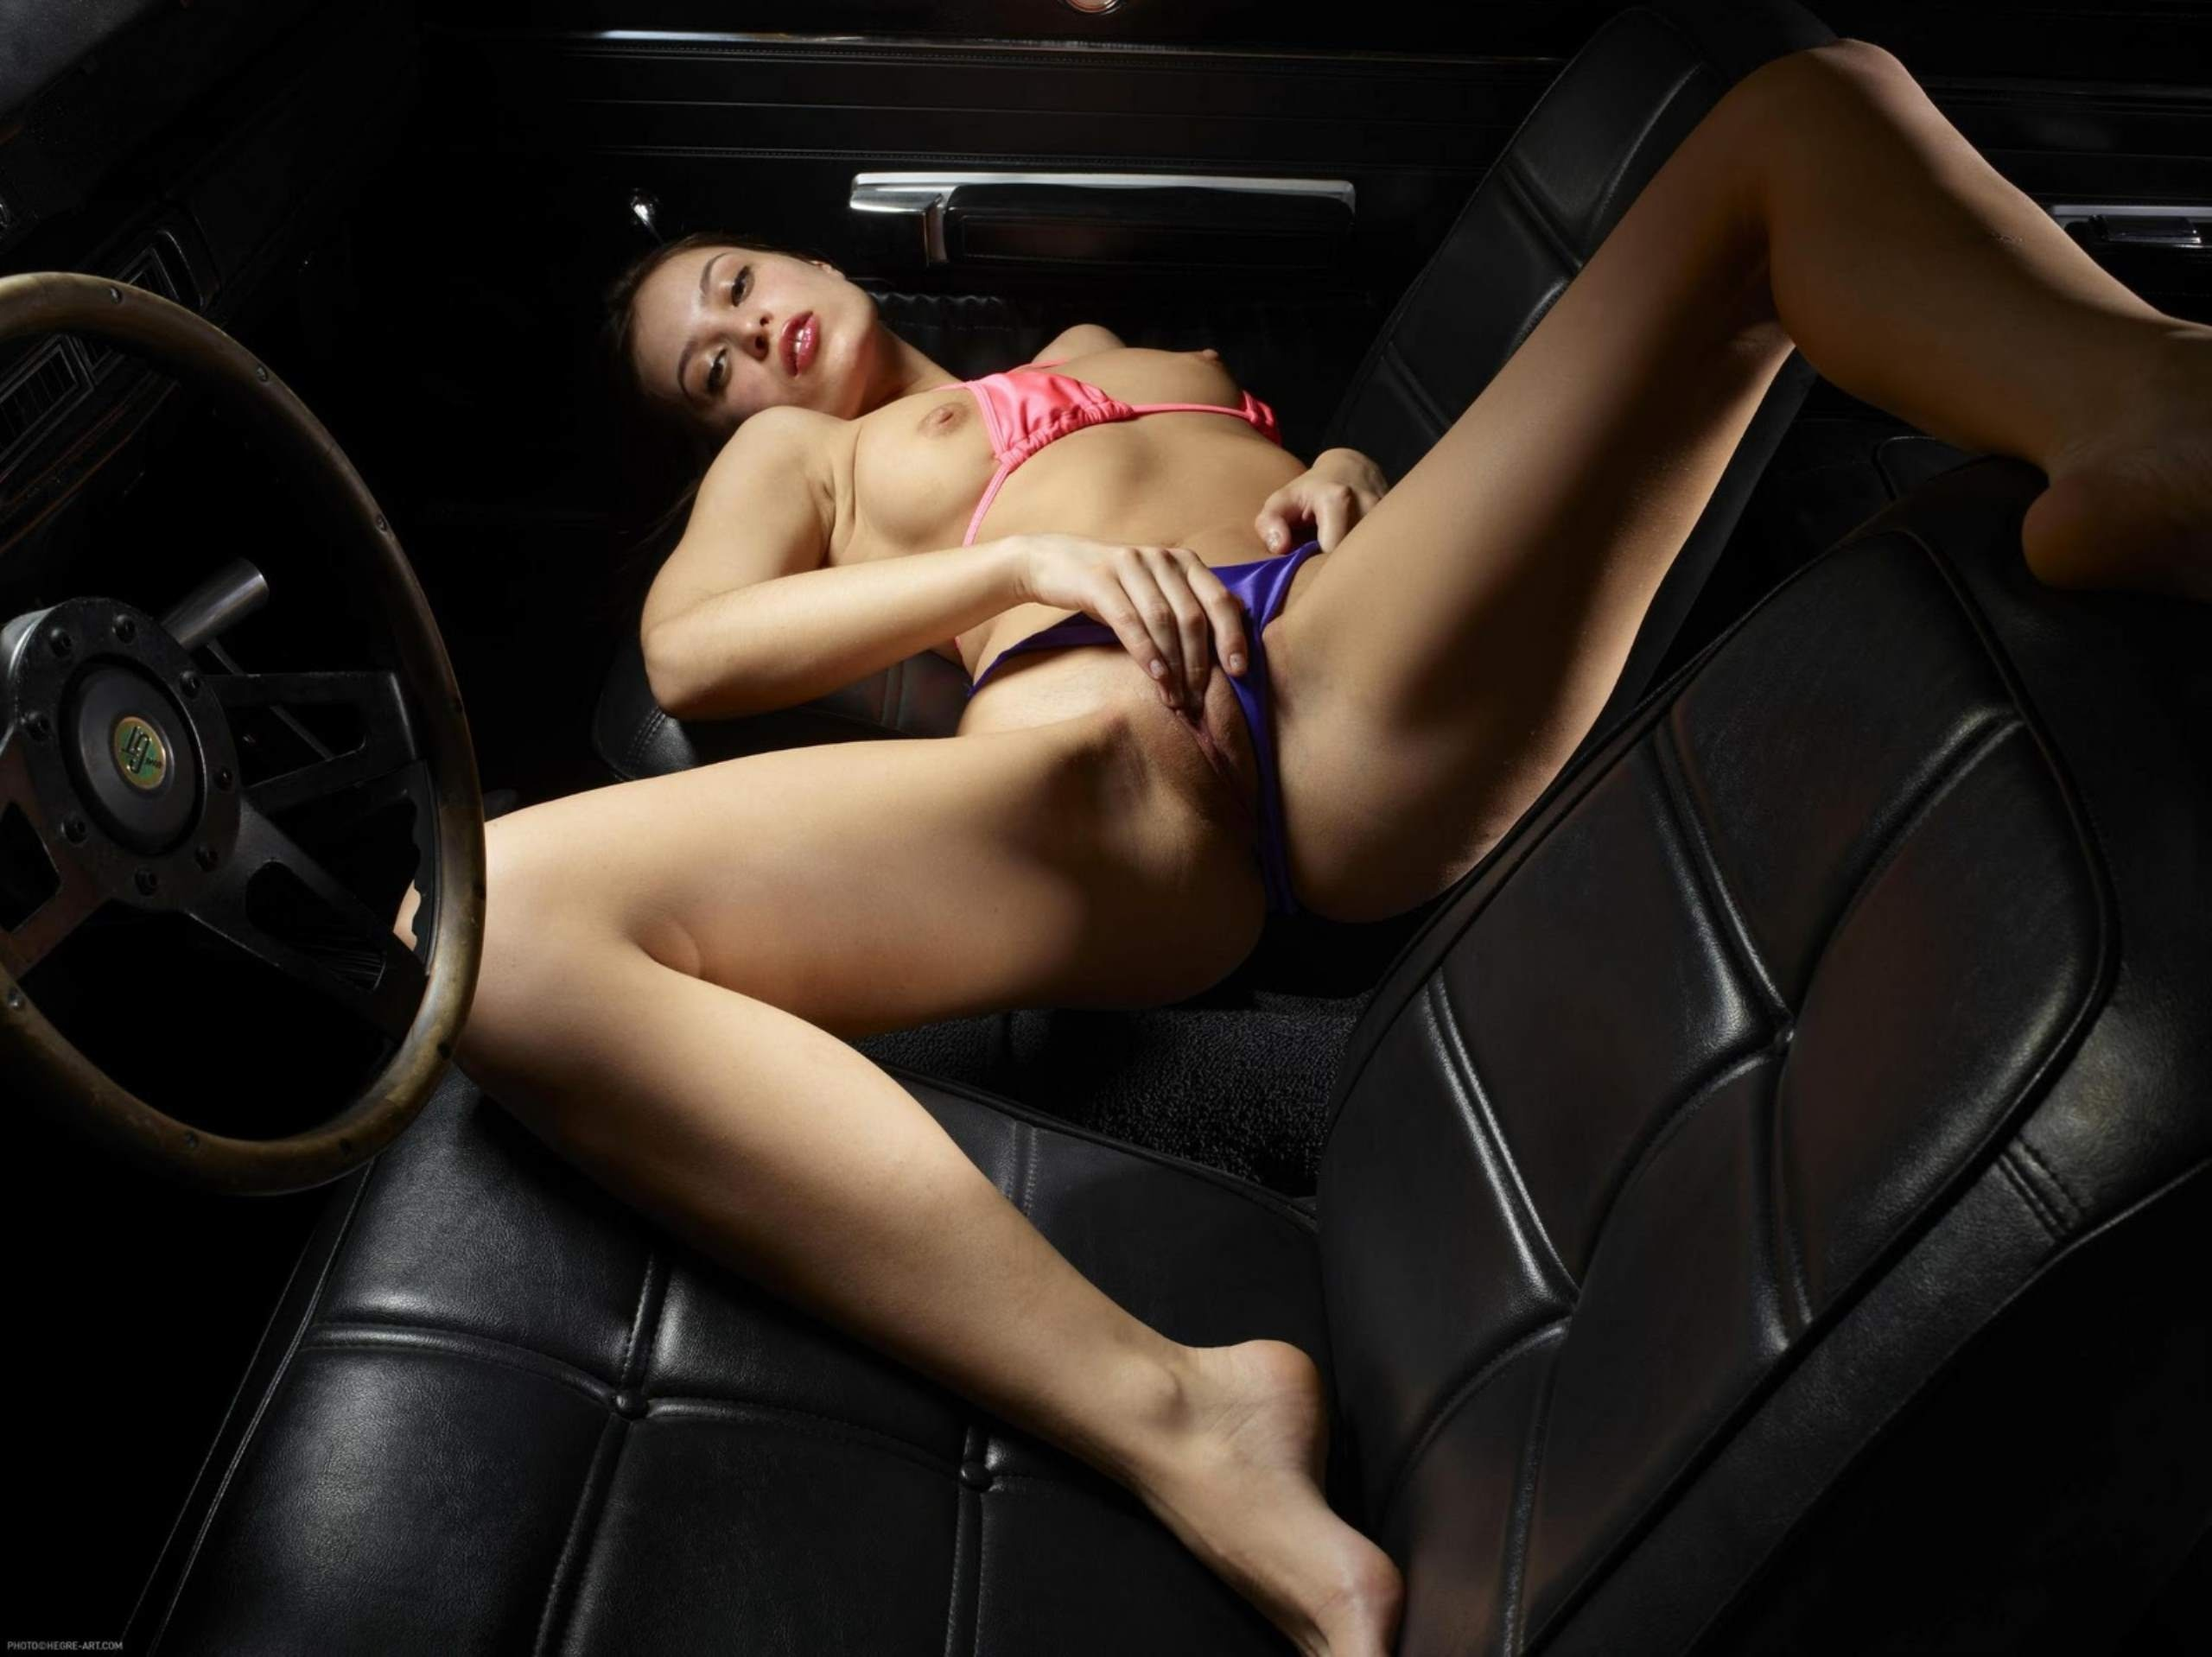 Sexiest women and cars nude that would